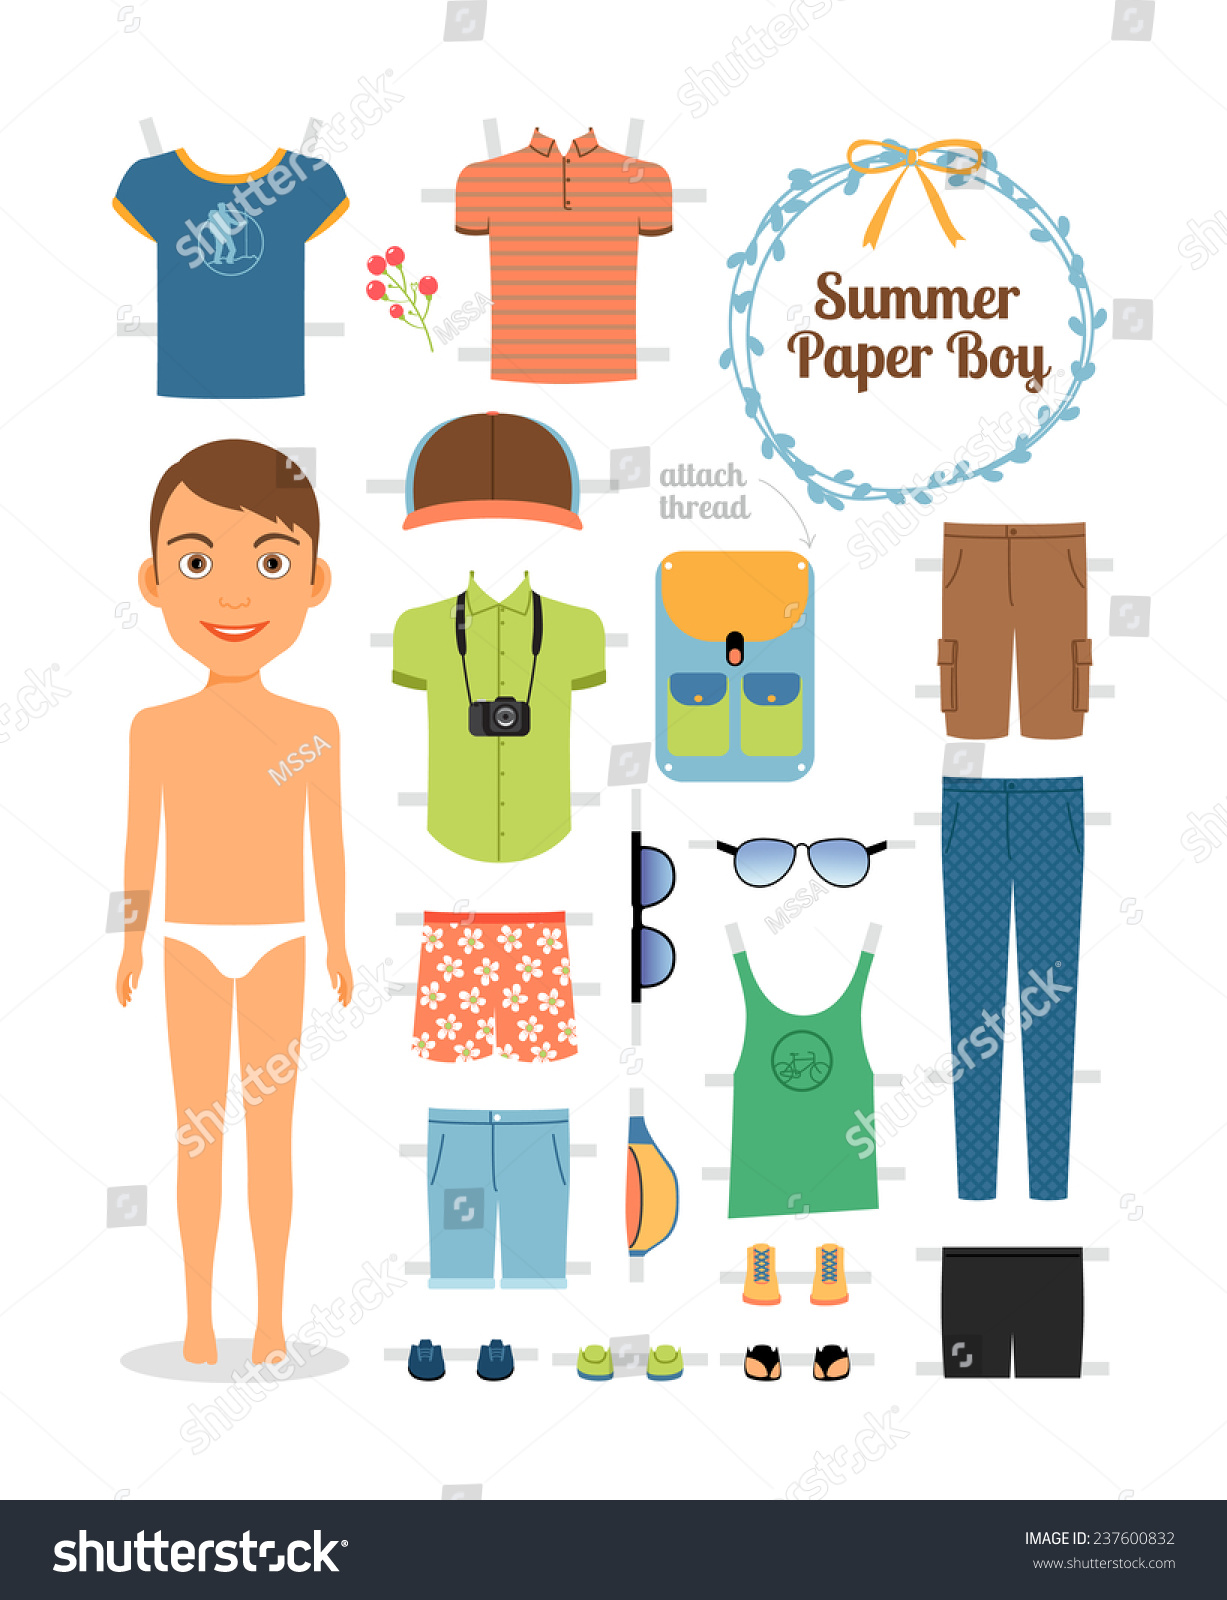 paper doll boy summer clothes shoes stock vector 237600832 shutterstock. Black Bedroom Furniture Sets. Home Design Ideas